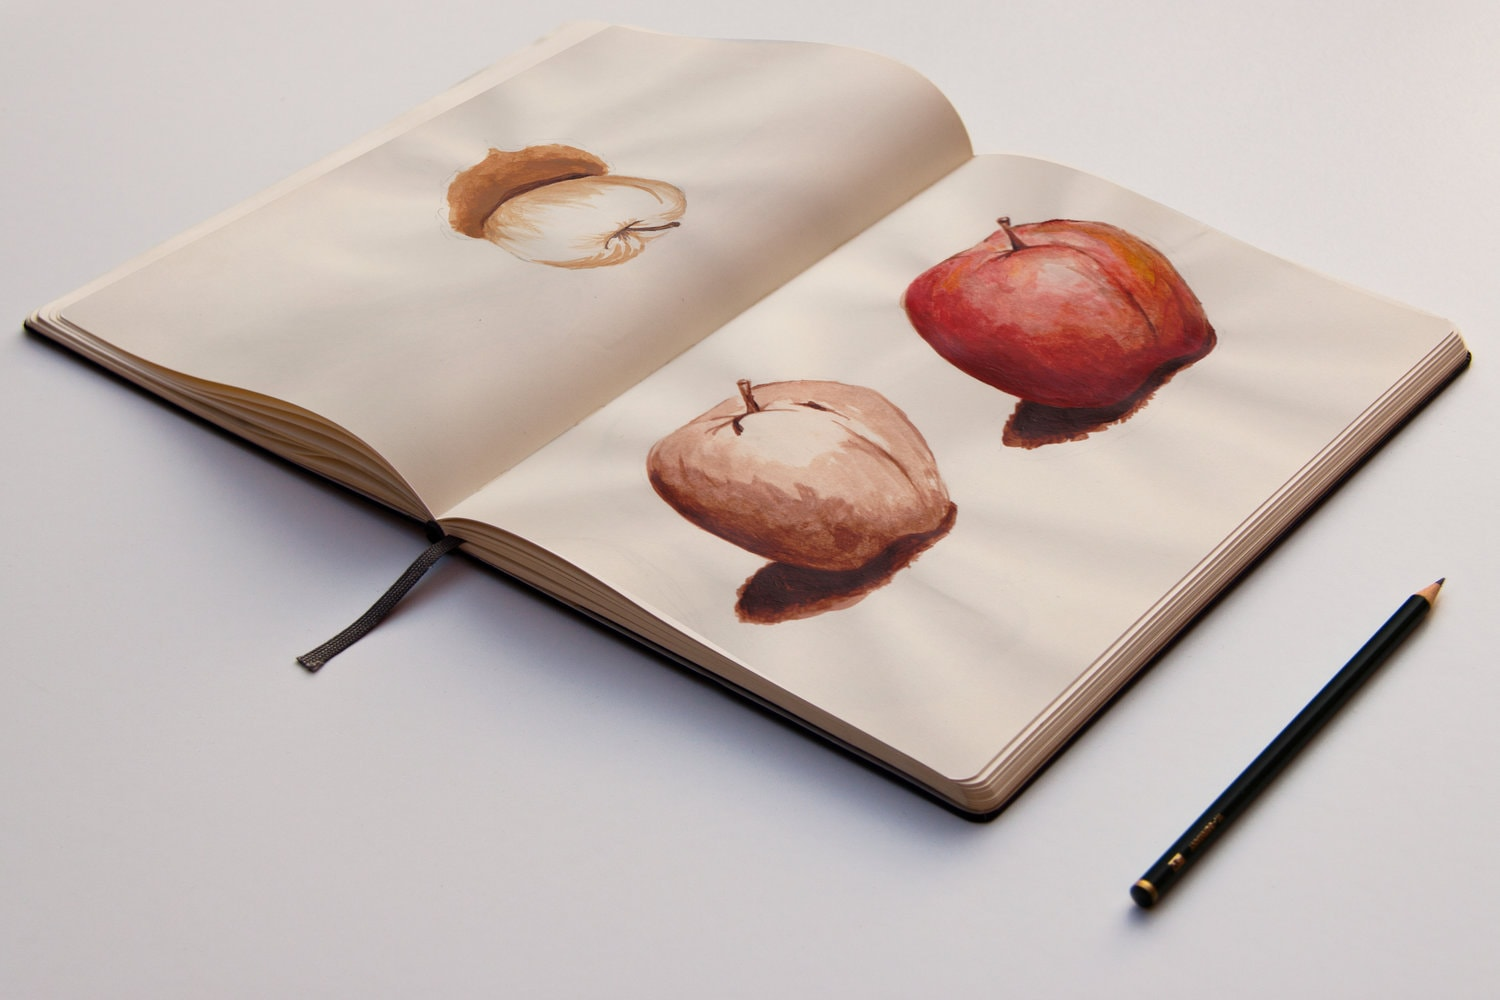 Apple Study    Materials  Acrylic and graphite.   Year  2013